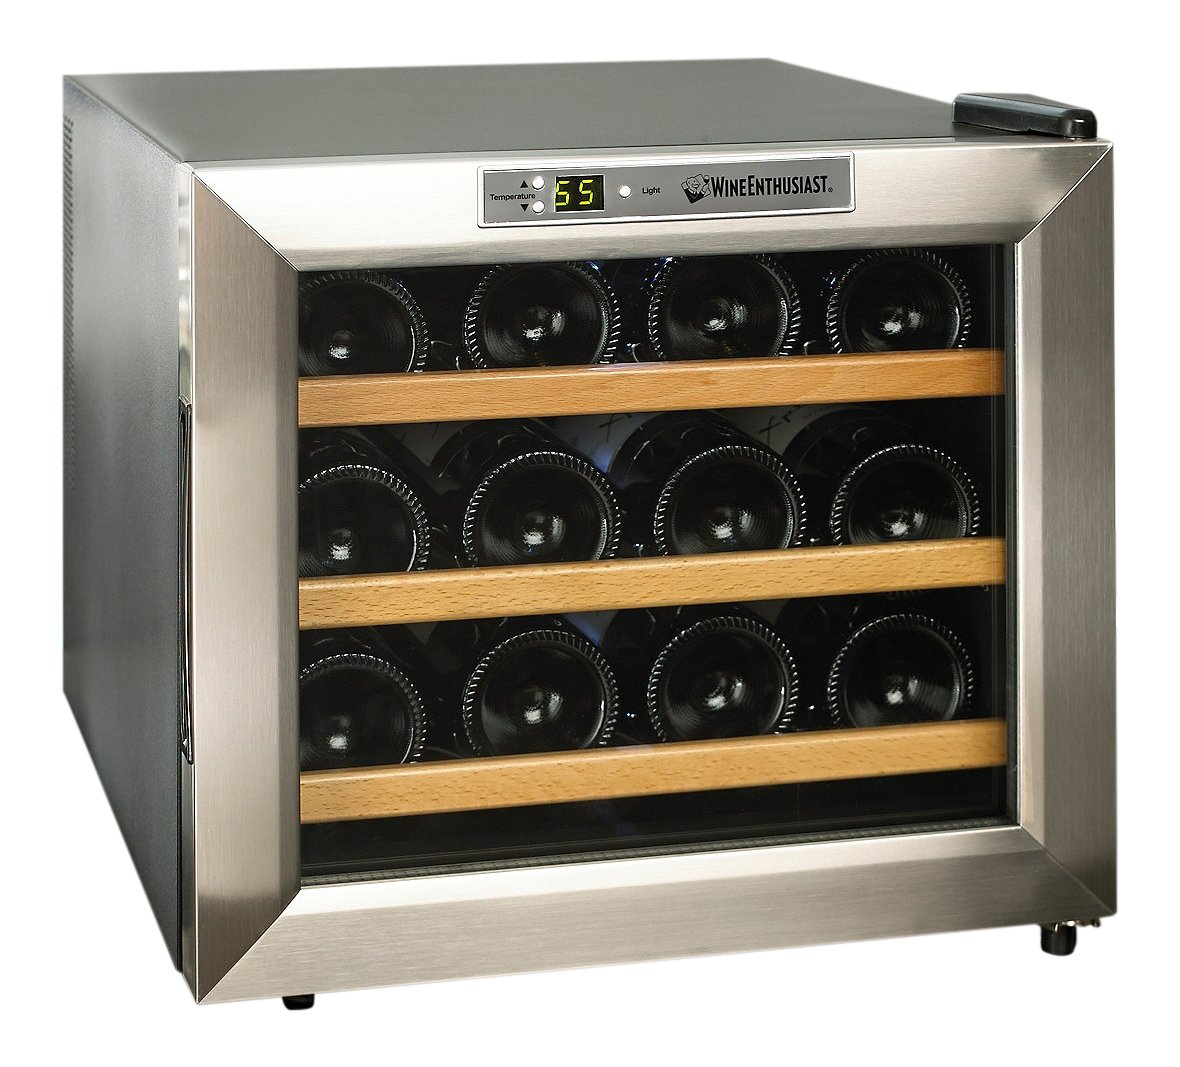 Wine Enthusiast 272 02 13W Stainless Steel Wood Shelves Silent 12 Bottle Wine Cooler Stainless